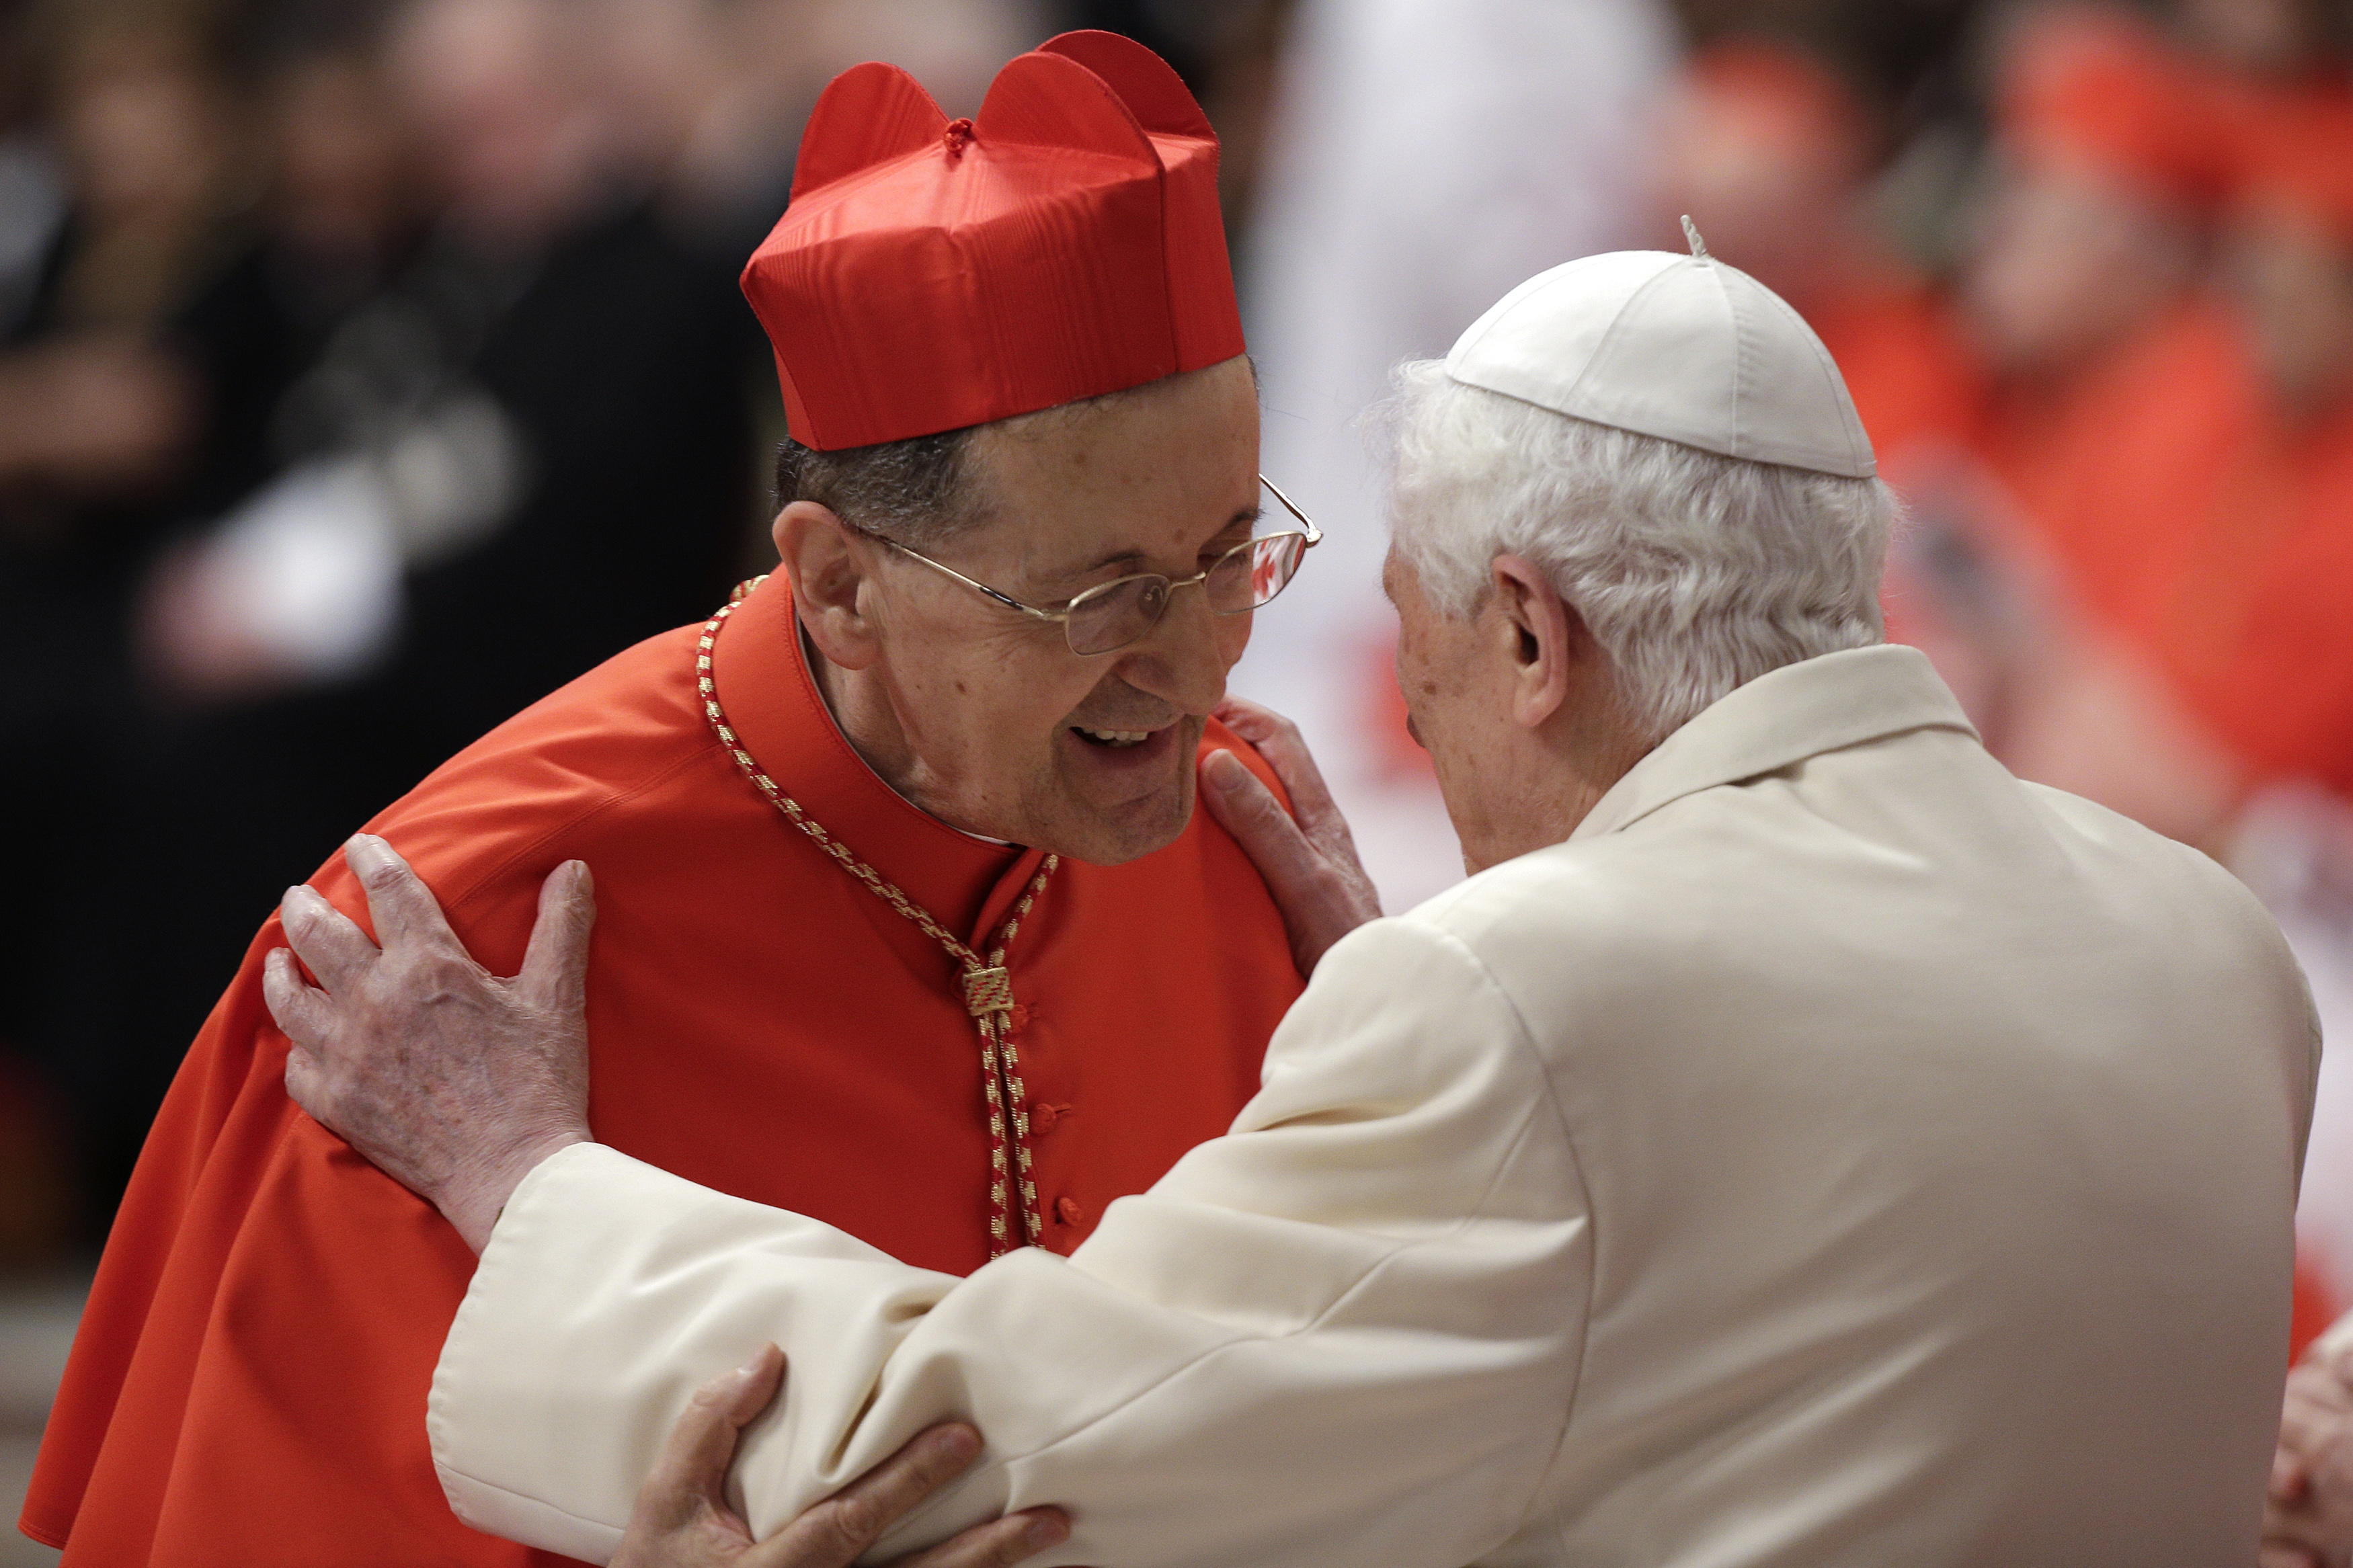 Former Pope Benedict XVI embraces newly elected cardinal Beniamino Stella of Italy during a consistory ceremony led by Pope Francis in Saint Peter's Basilica at the Vatican February 22, 2014. REUTERS/Max Rossi